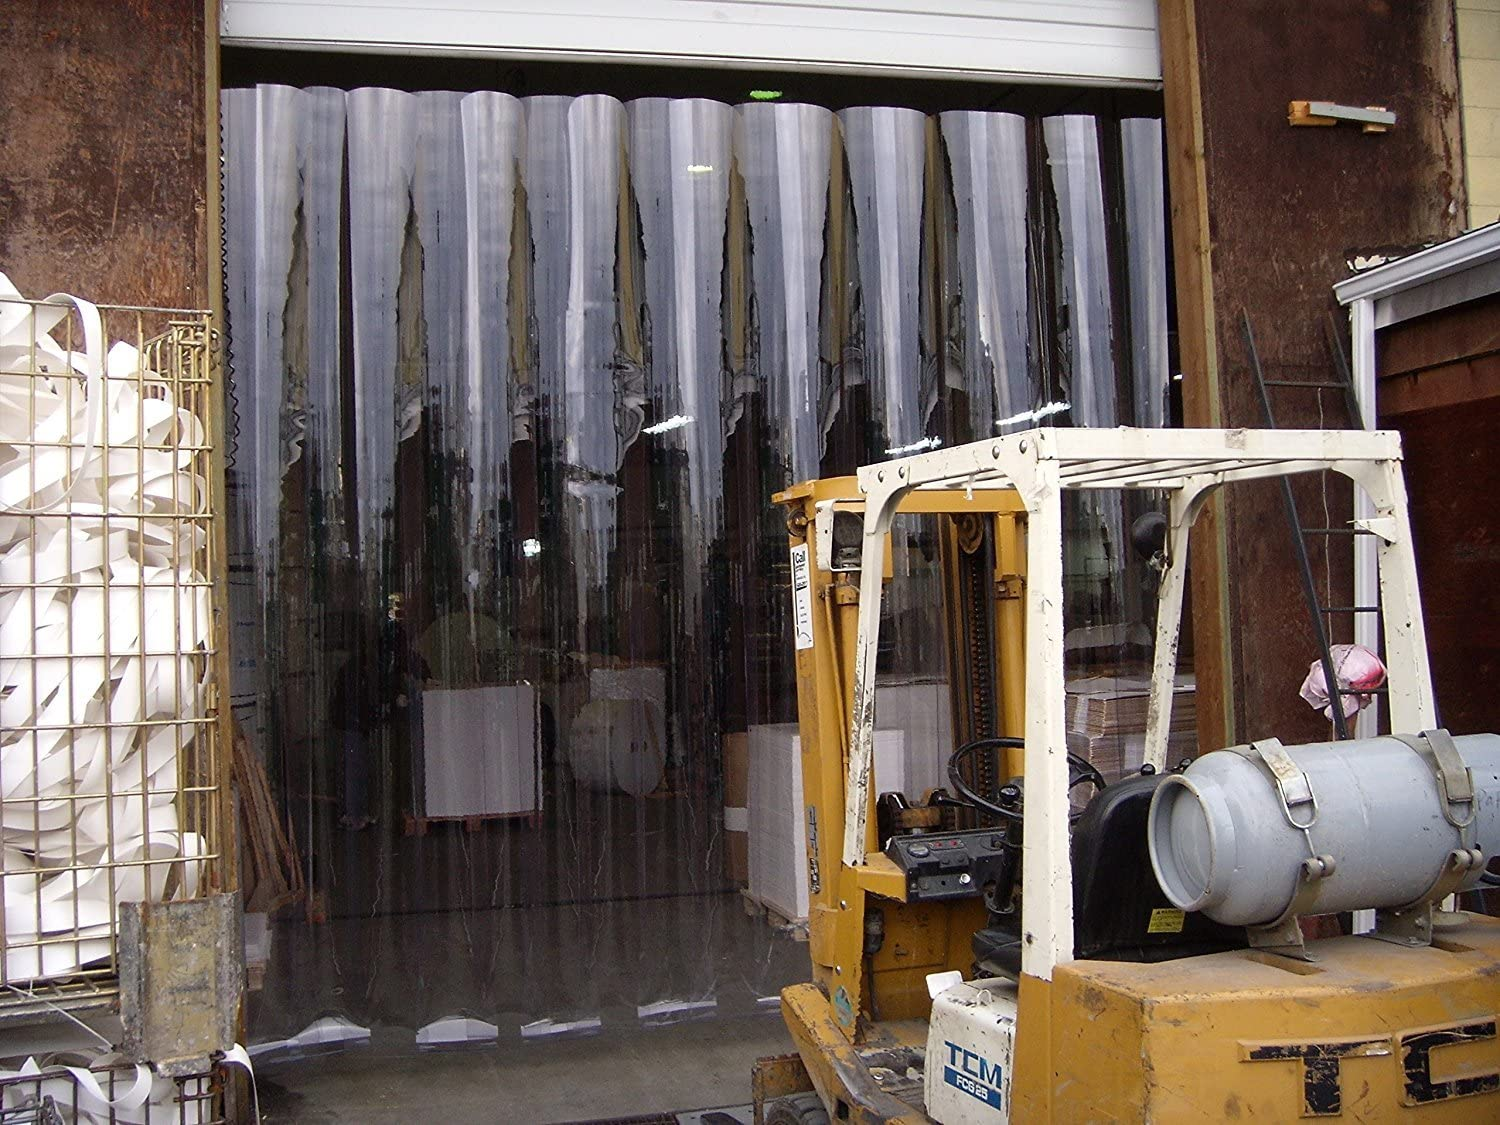 48 in. strips with 50/% overlap Hardware included Strip-Curtains.com: Strip Door Curtain common door kit width X 96 in. 8 ft 4 ft height Standard smooth 8 in